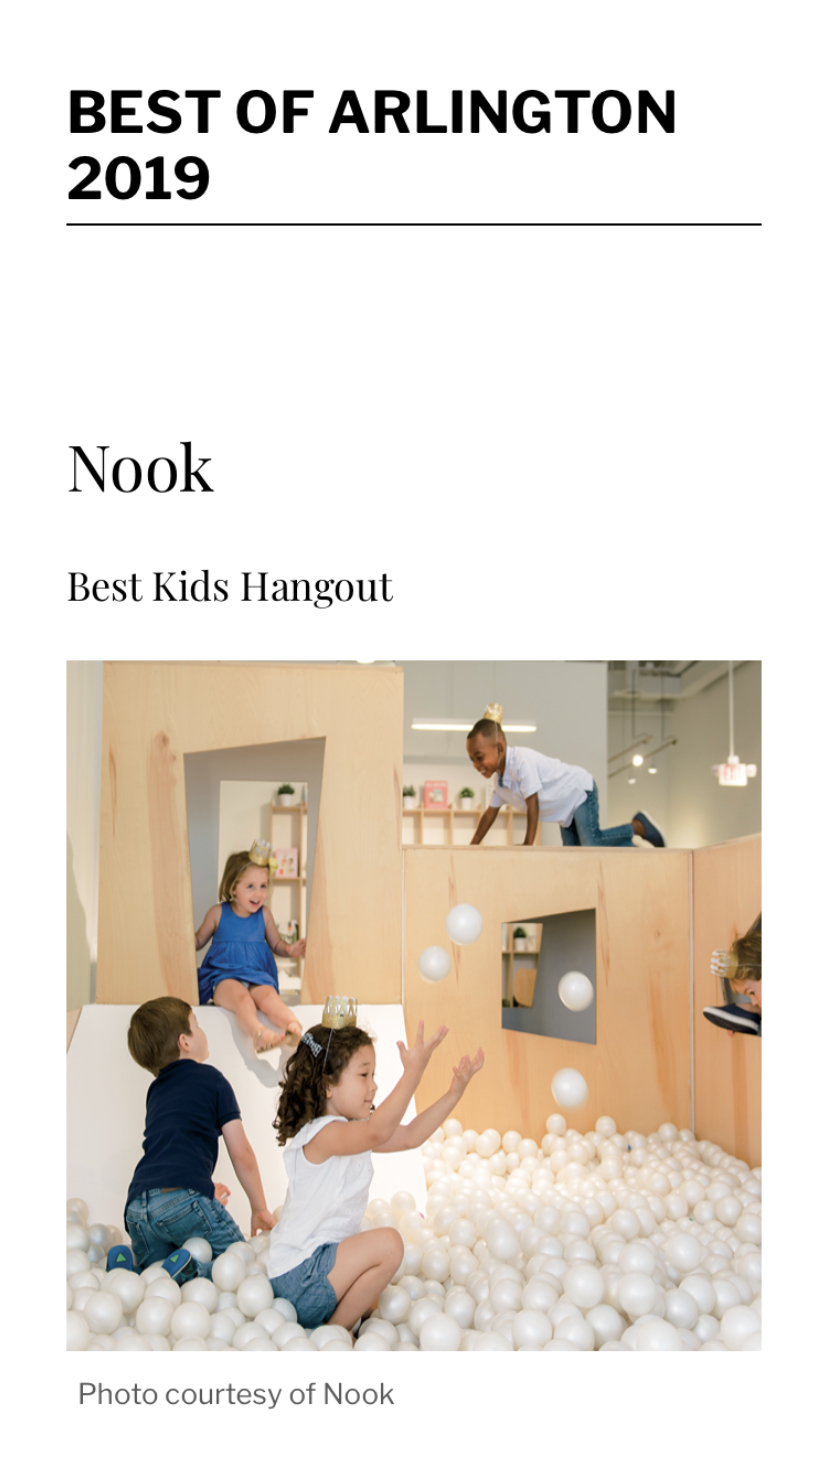 Arlington Mag | Best of 2019 - Nook is named Best Kids Hangout in Arlington Magazine's Best of 2019 issue.